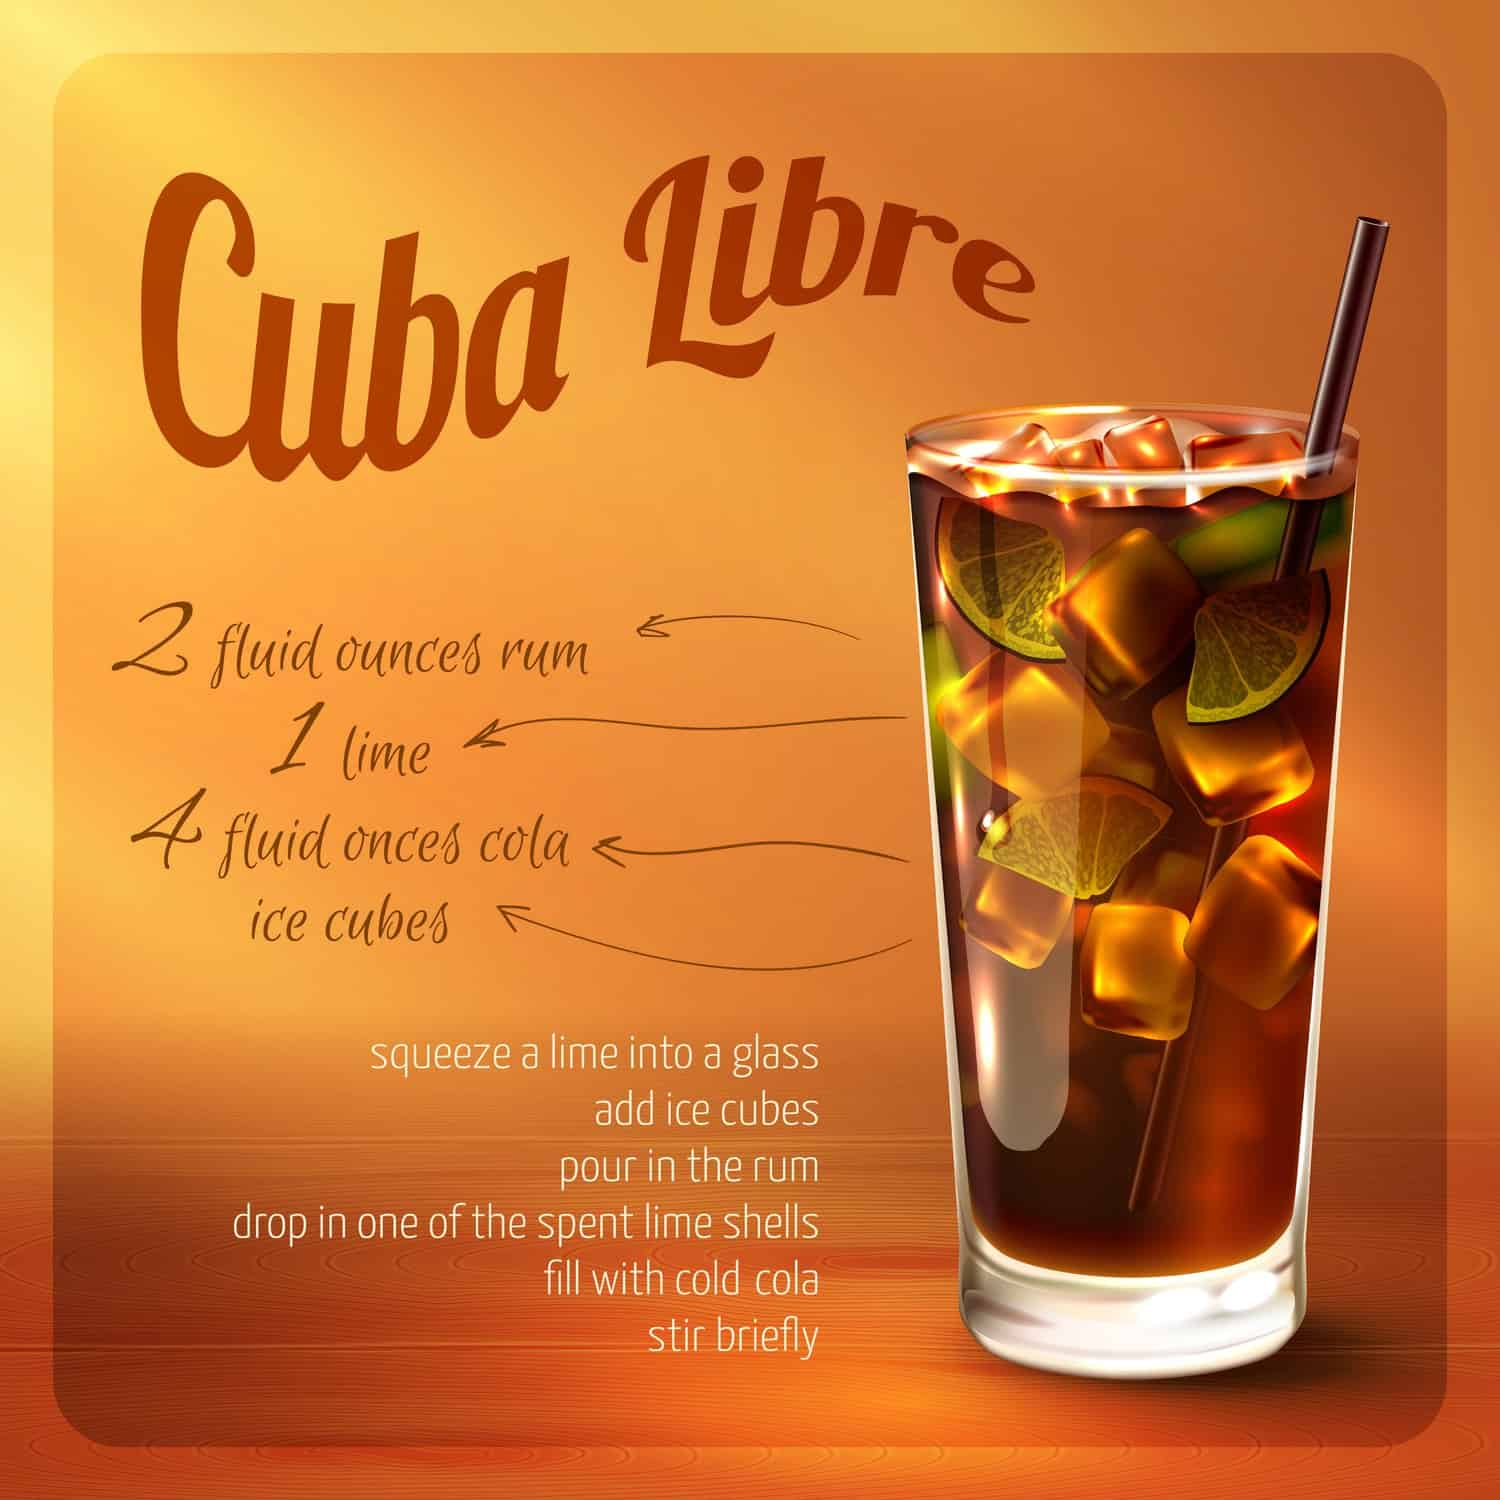 Cuba Libre Cocktail 4 Amazing Summer Mixed Drinks With Cute Free Printable